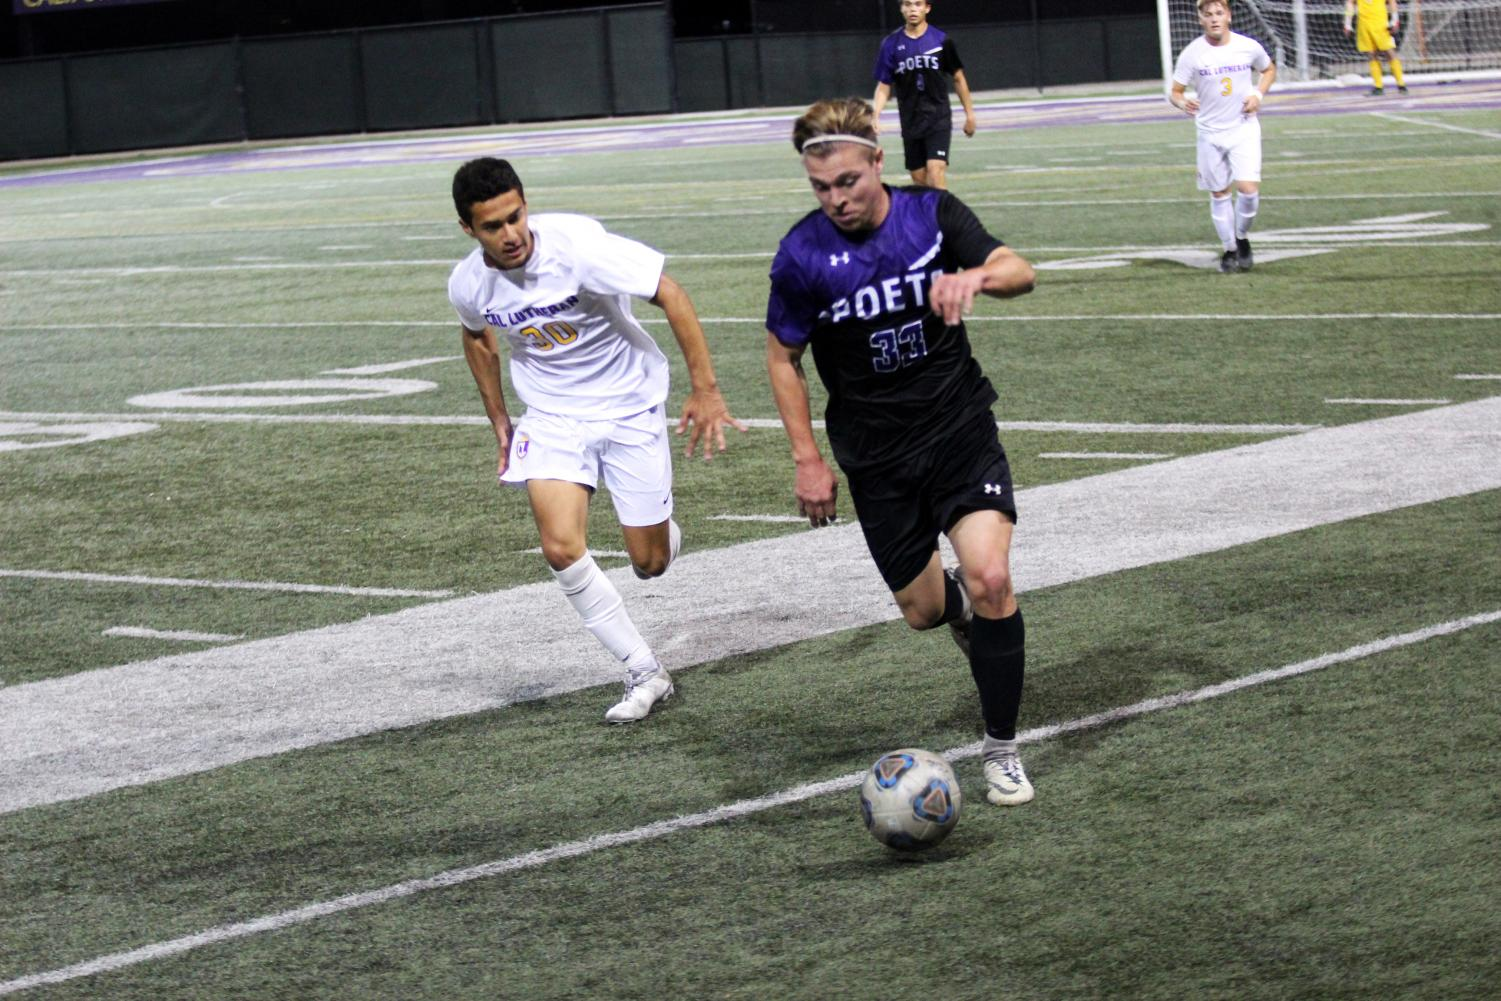 First-year midfielder Brandon Chavez chased down a Whittier forward during the game on Saturday, Oct. 26.